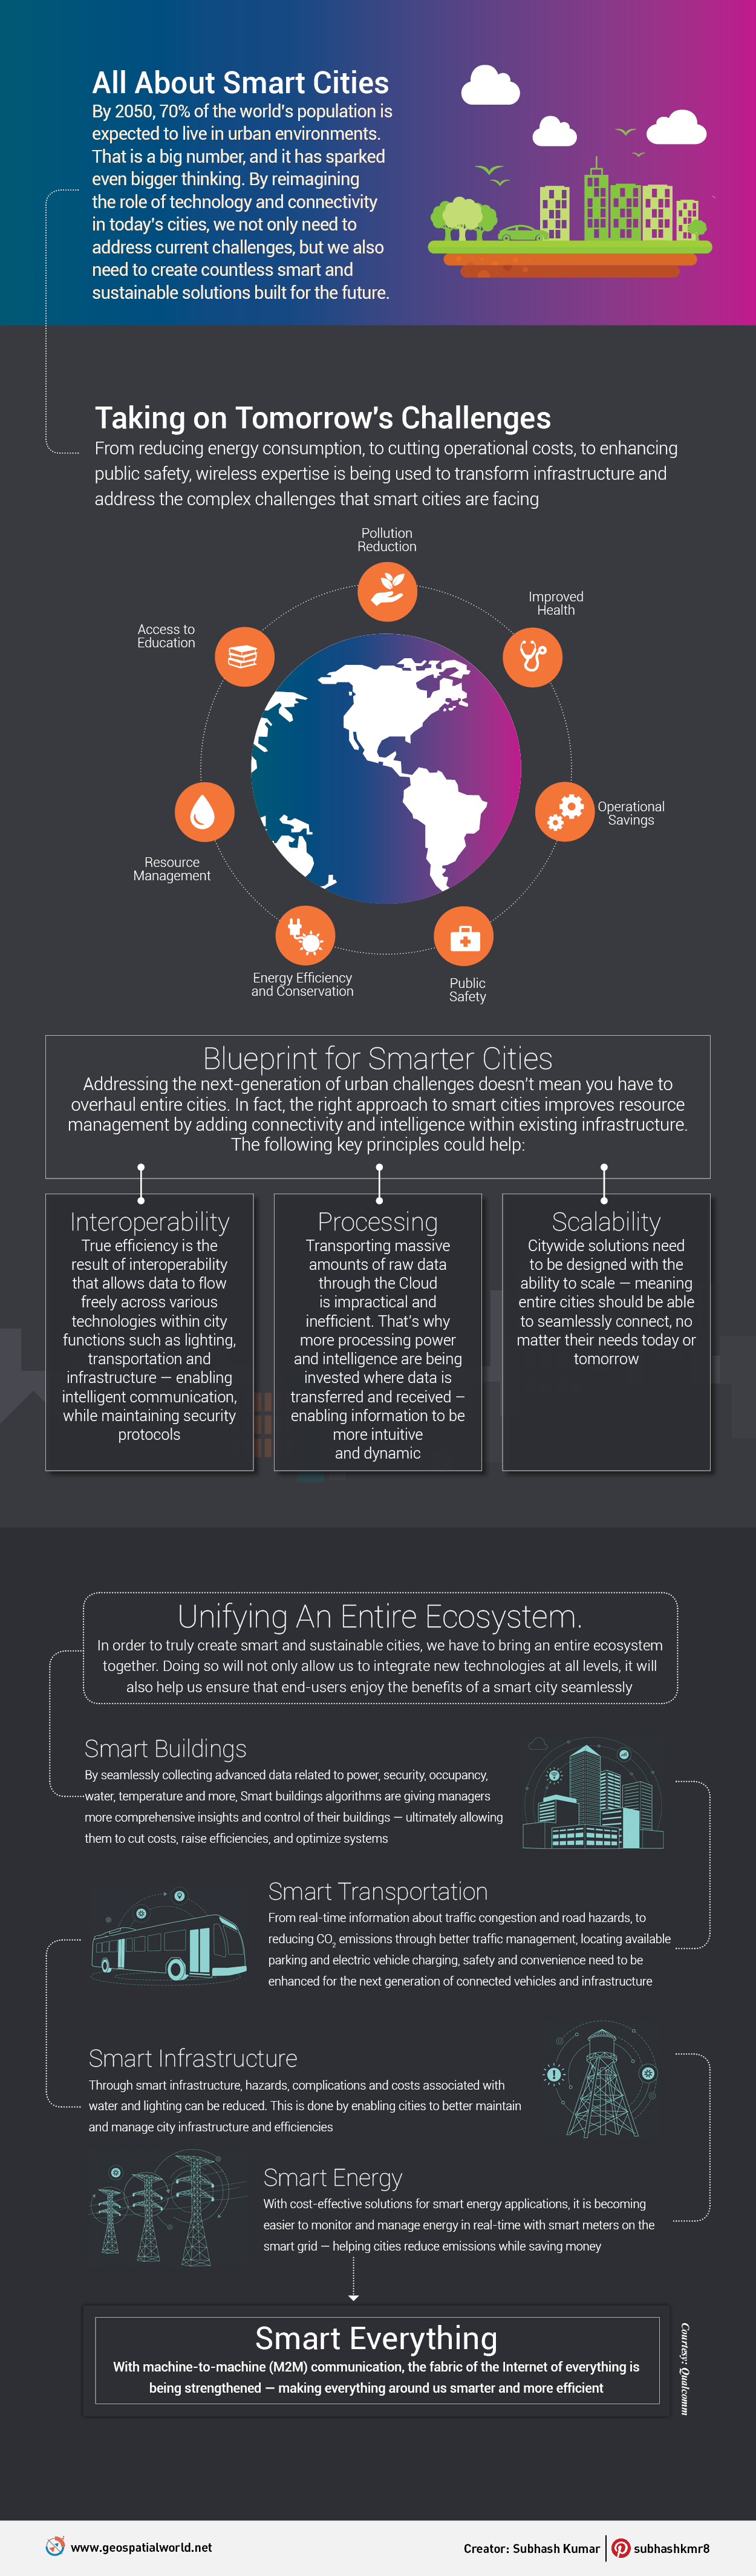 Blue print for Smart Cities - Infographic by Geospatial Media